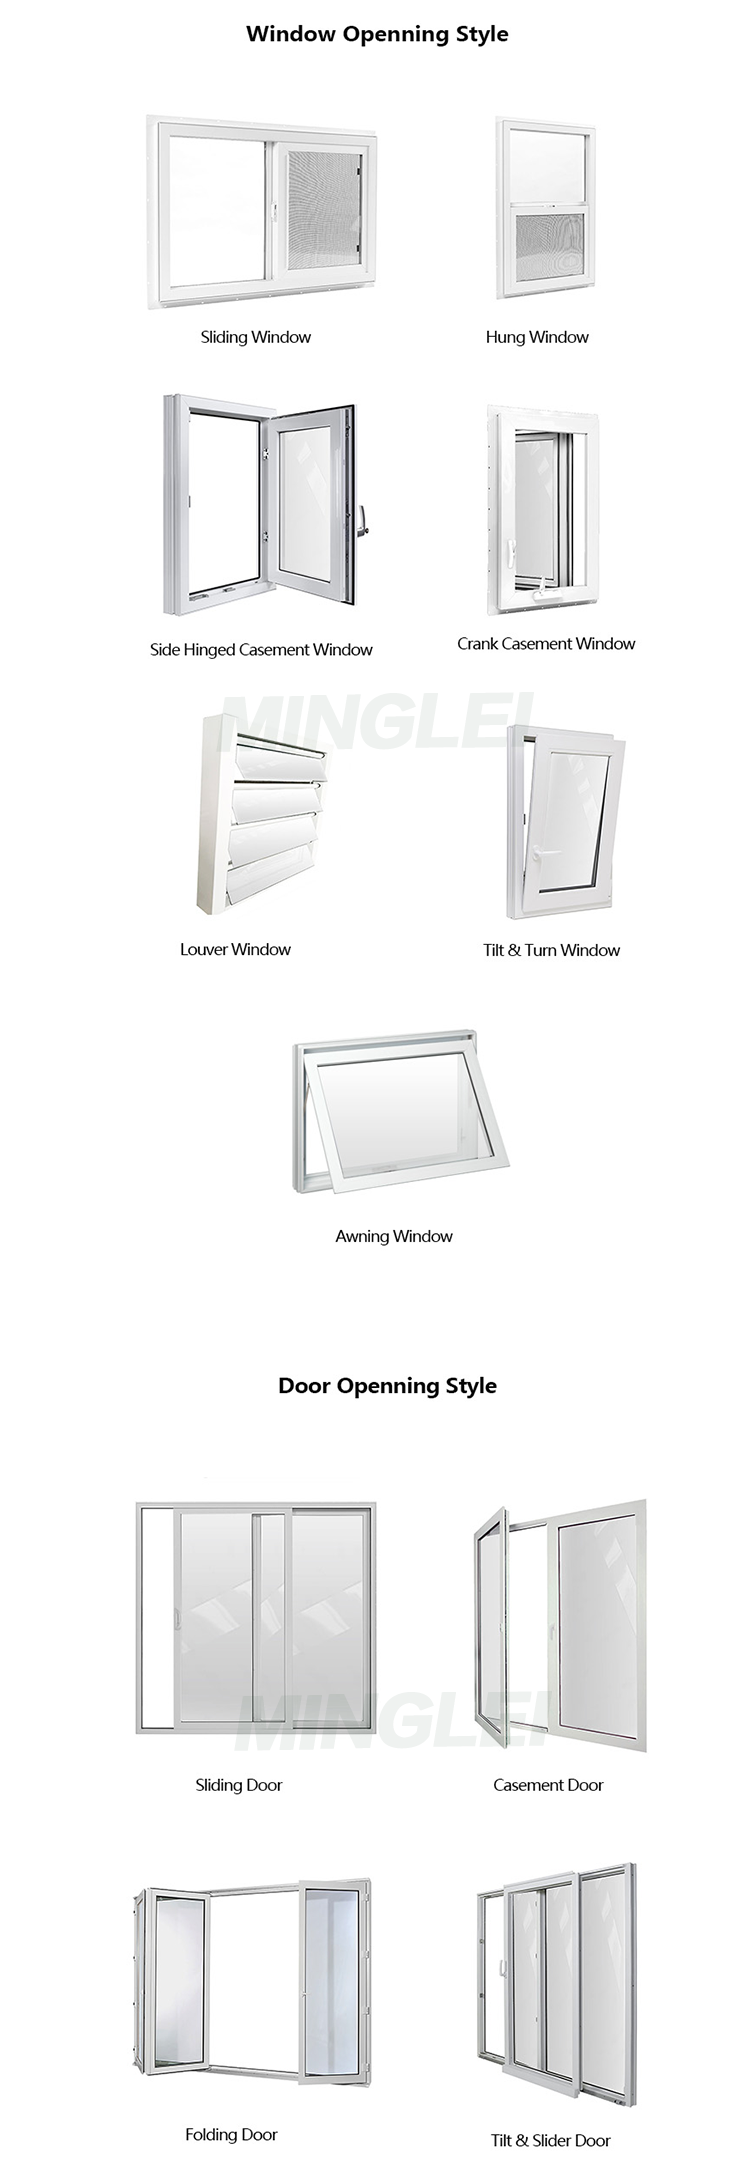 60 x 36 60 x 60 60 x 48 sliding window custom-made